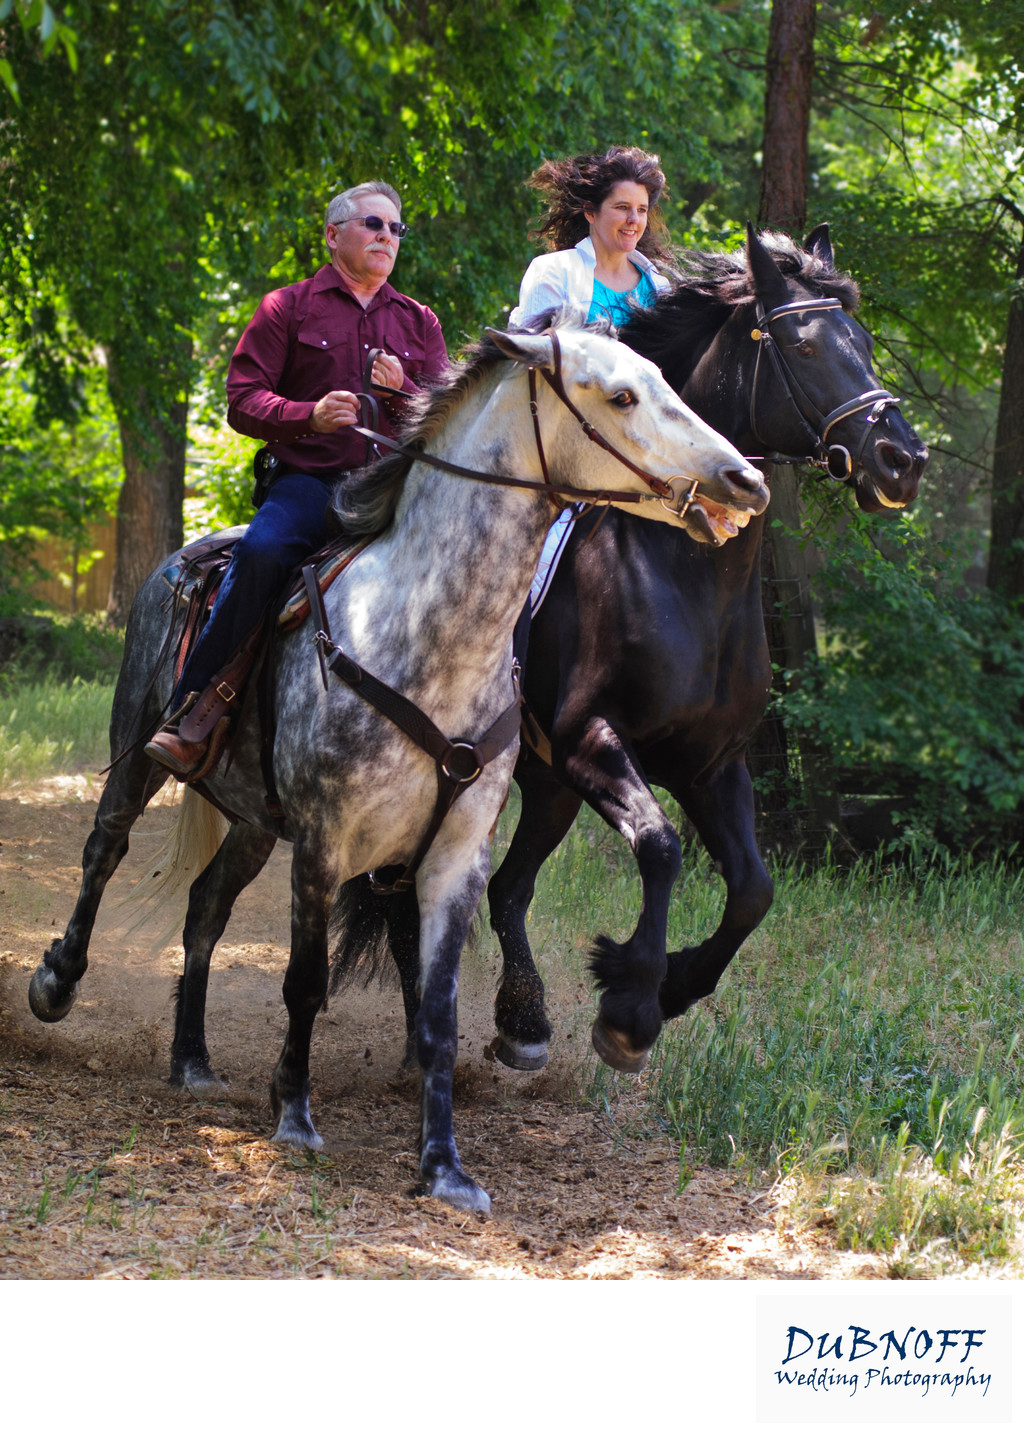 Horses Cantering During Equine Portrait Photography Session